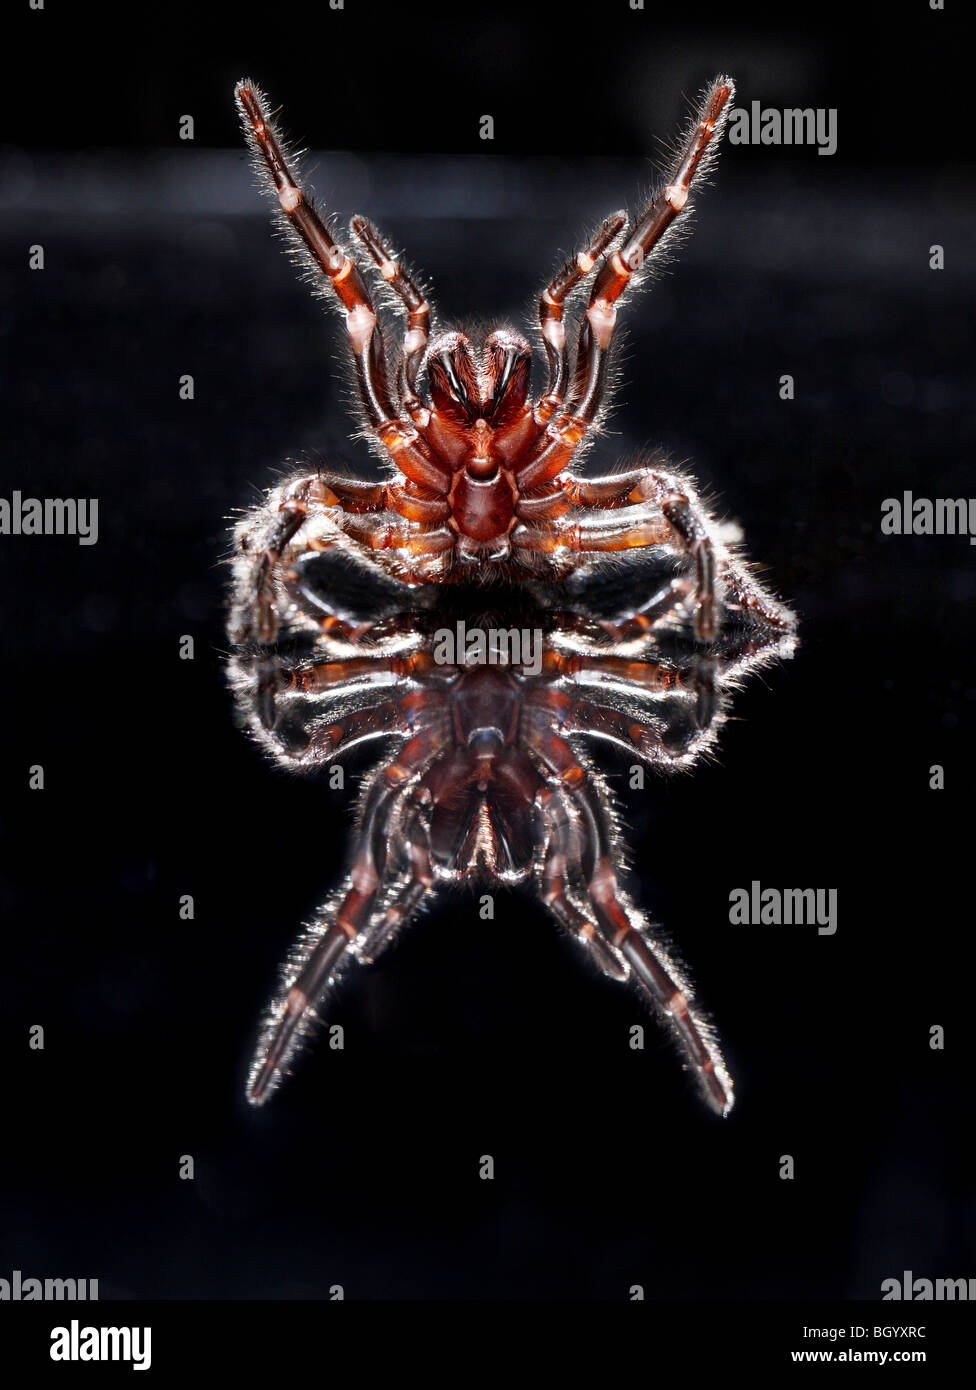 Deadly Funnel Web Spider Australia - Stock Image